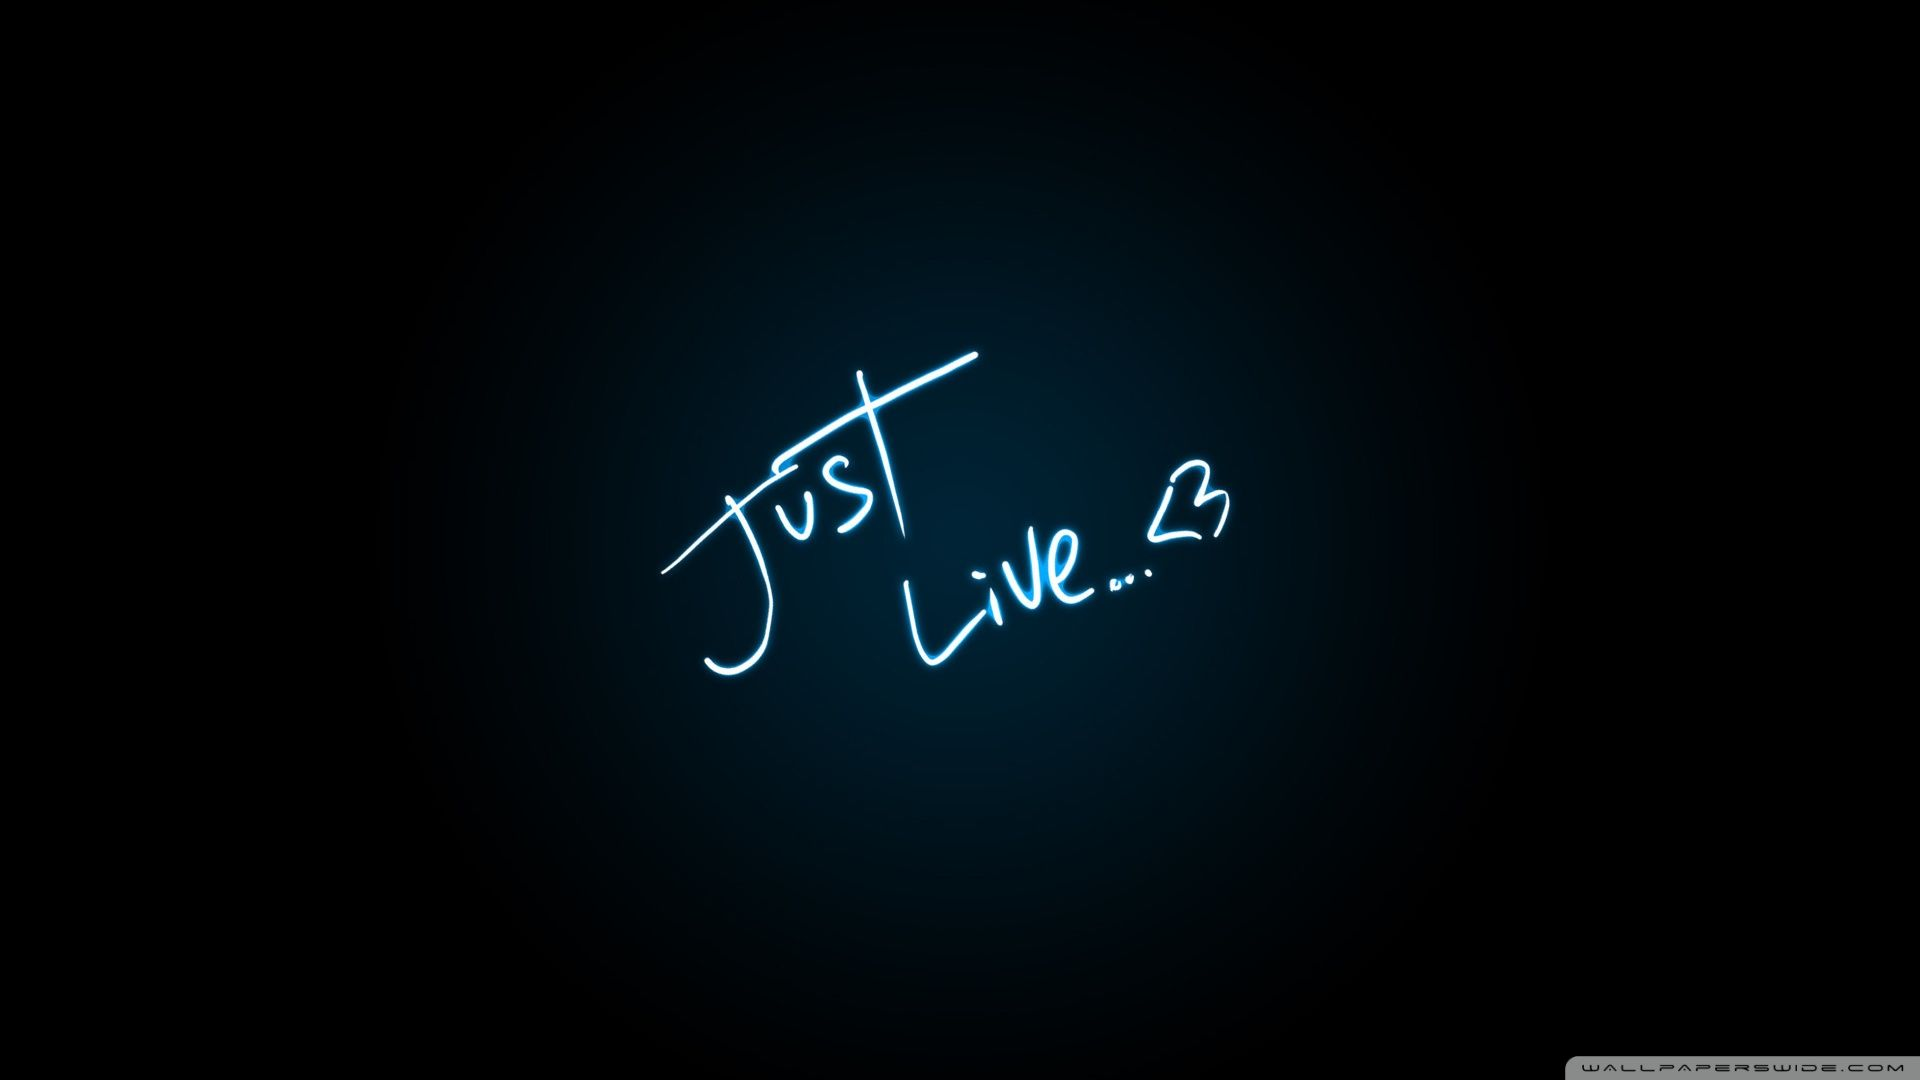 Just Live Love Quotes Wallpaper Wallpaper Quotes Live Wallpapers